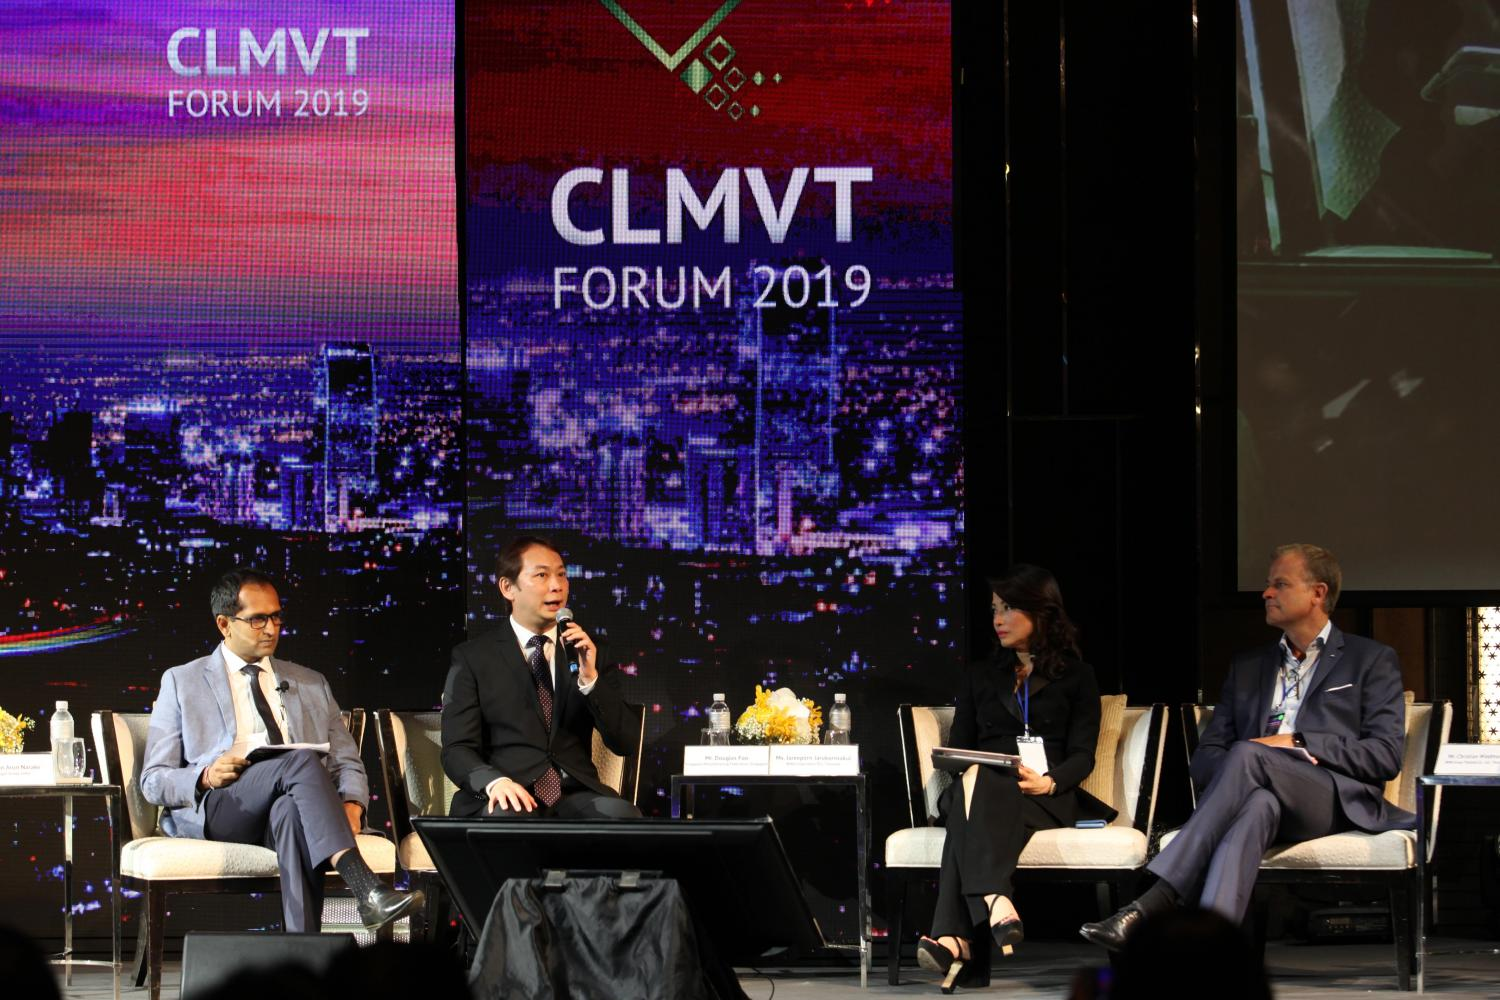 From left, Chetan Arun Narake, Douglas Foo, Jareeporn Jarukornsakul and Christian Wiedmann discuss issues at the CLMVT Forum 2019, calling for new business and economic opportunities in the region.Wichan Charoenkiatpakul